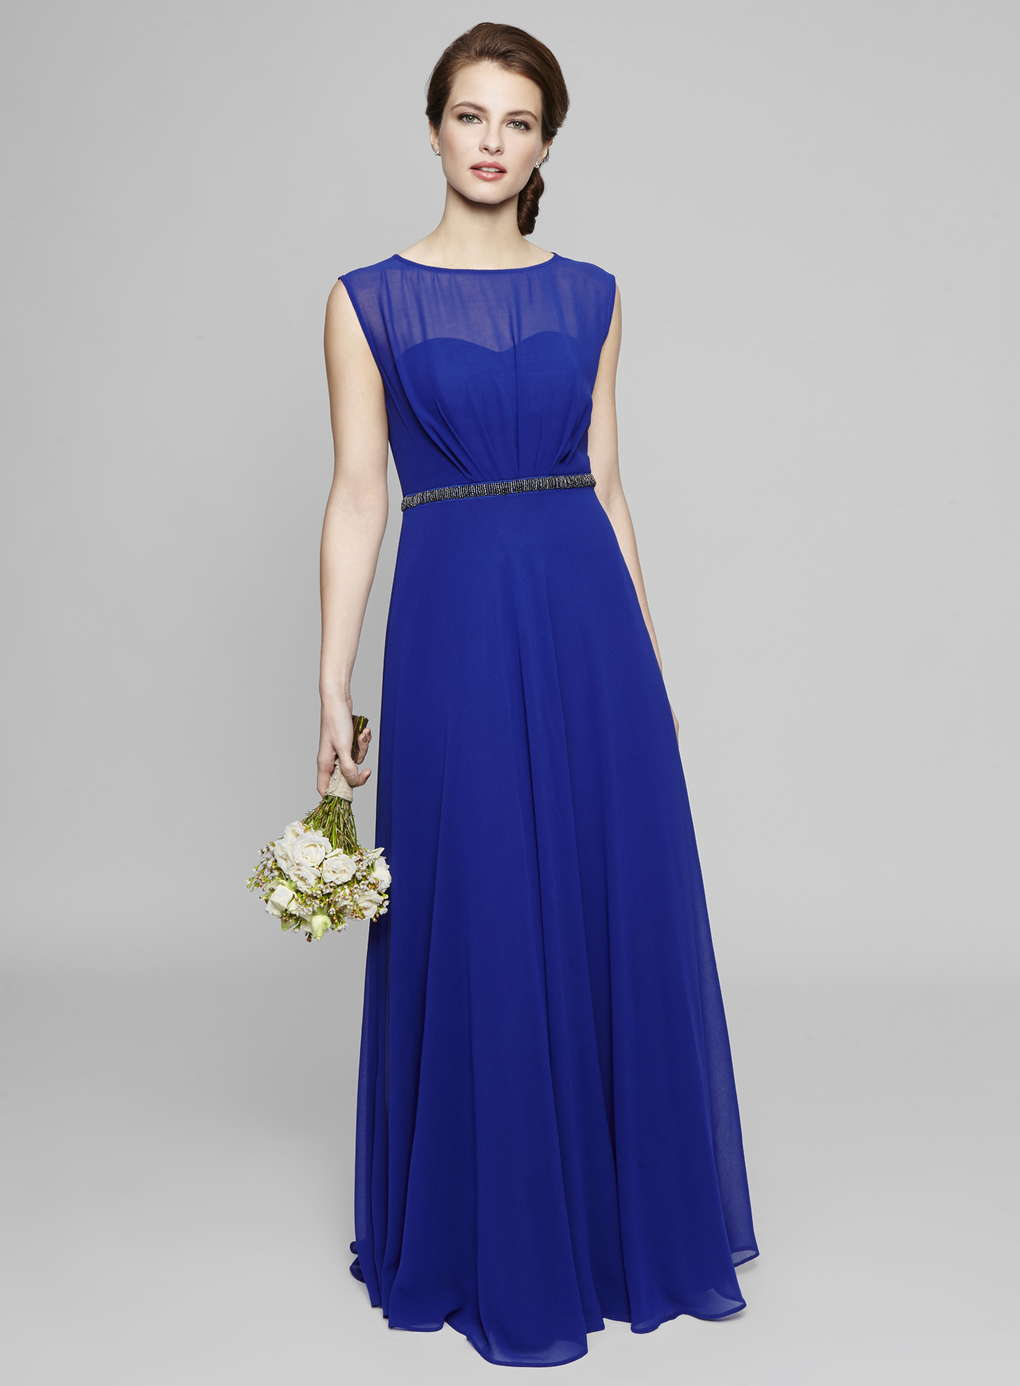 Bateau Neck Cap Sleeved Long Royal Blue Chiffon Bridesmaid Dress